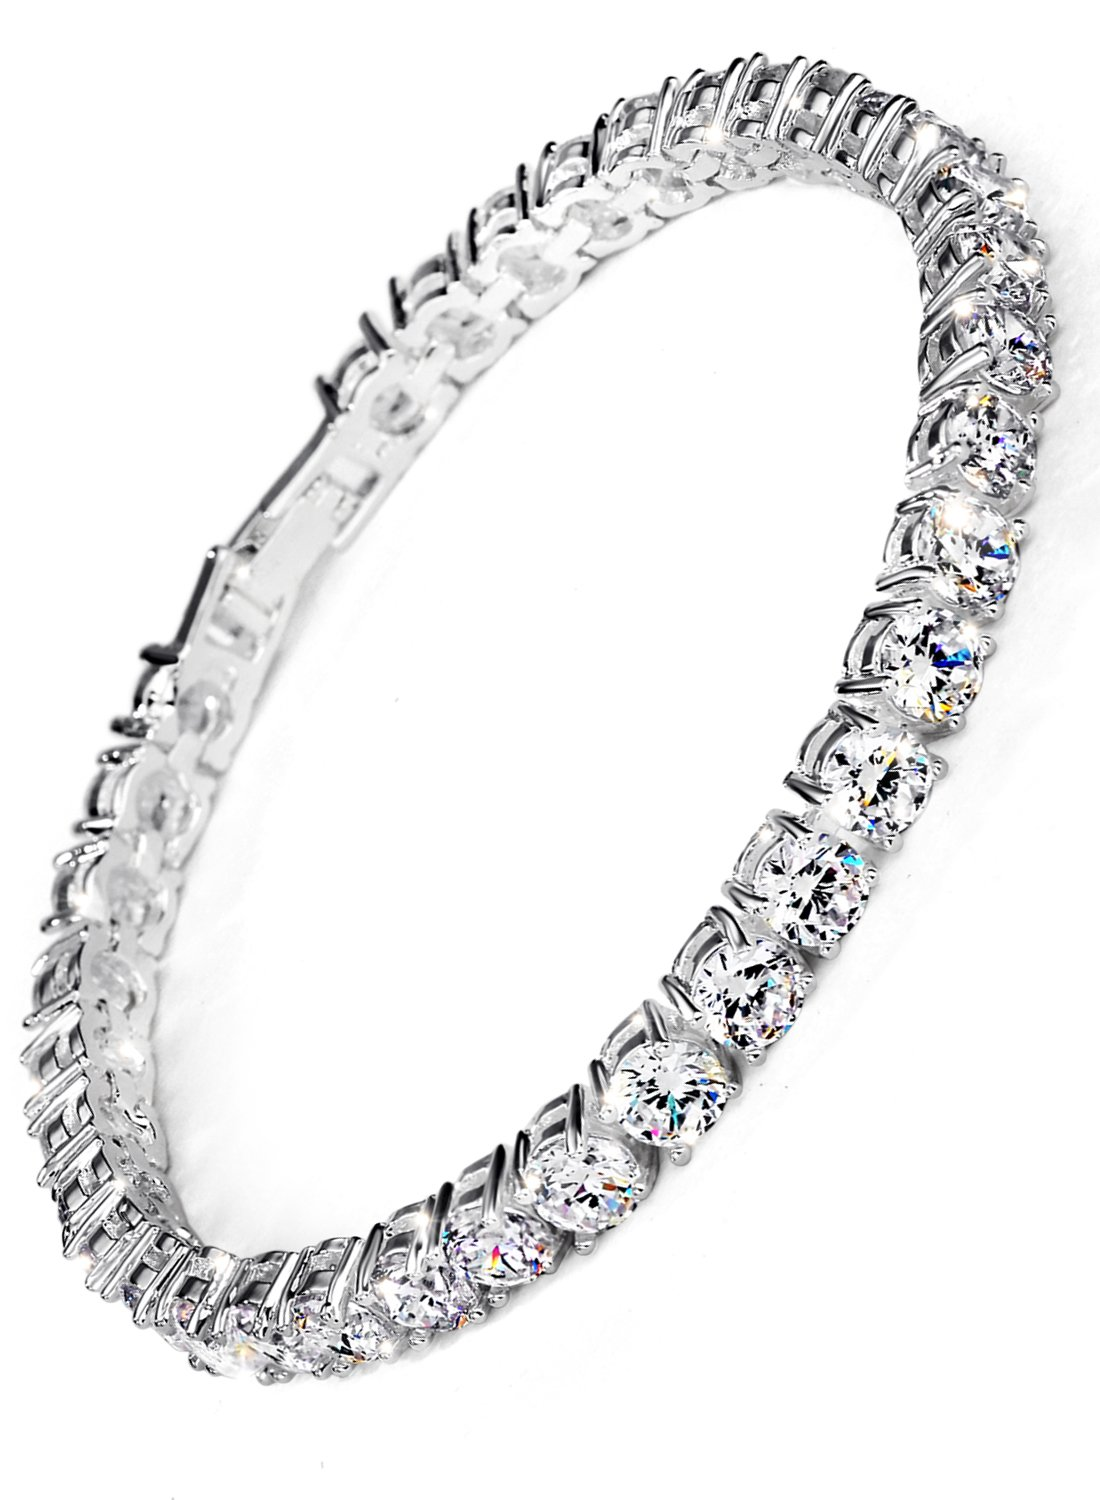 Neoglory Jewelry S925 Silver White Round-Cut Cubic Zirconia Classic Tennis Bracelet 7.7Inch by Neoglory (Image #1)